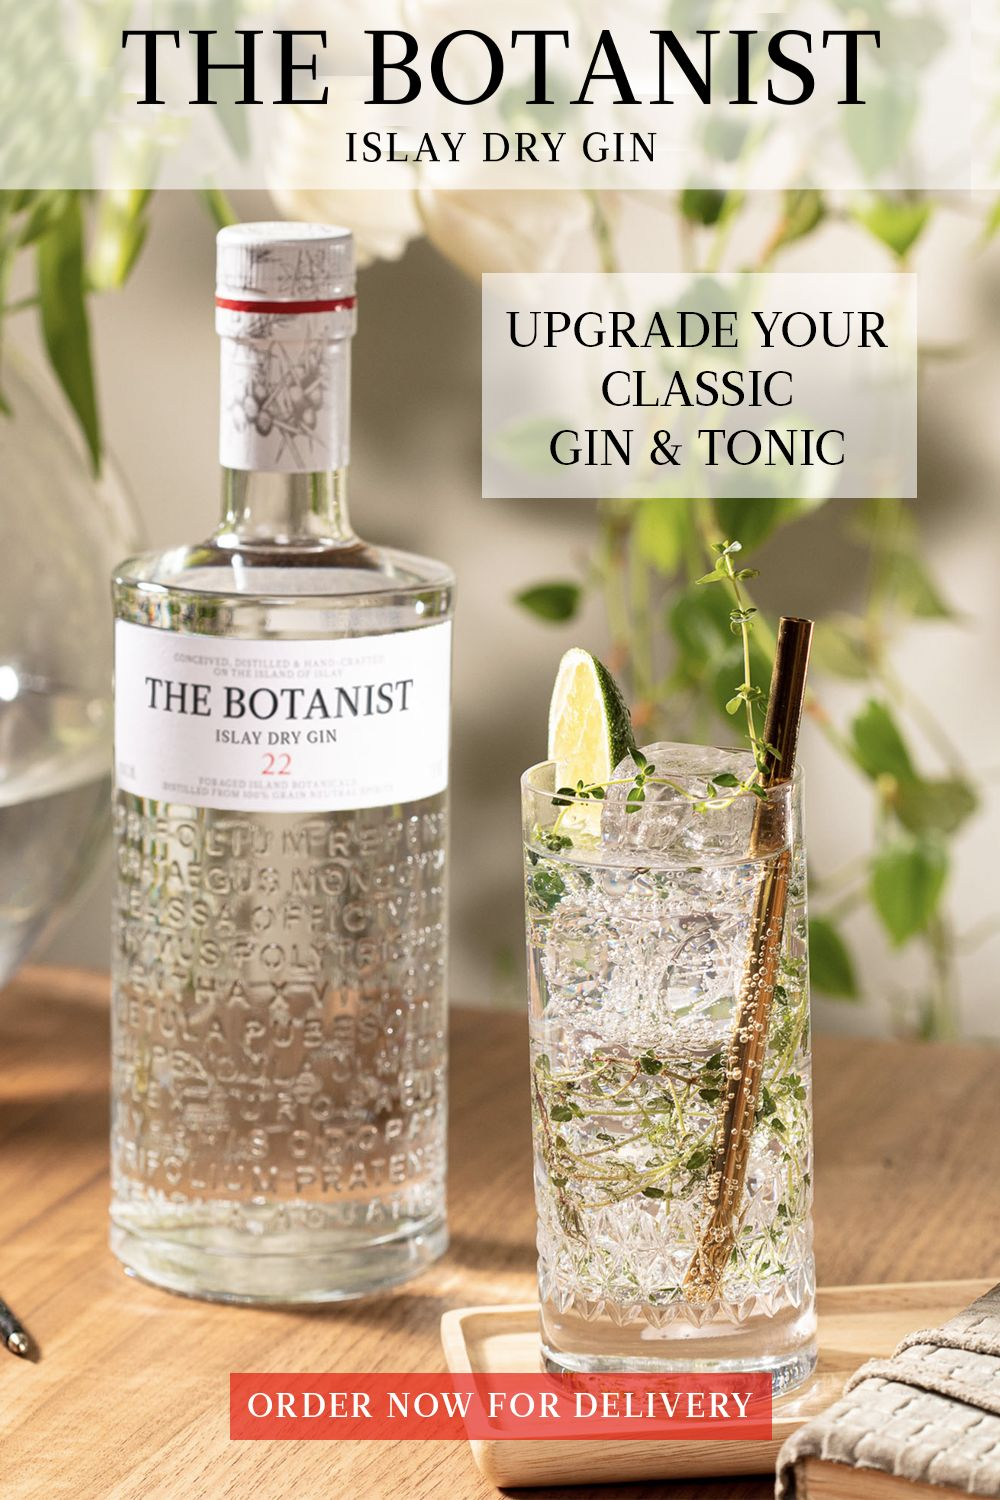 The Botanist Gin Tonic Recipes For Summer Gin Tonic Recipe Botanist Gin Alcohol Drink Recipes